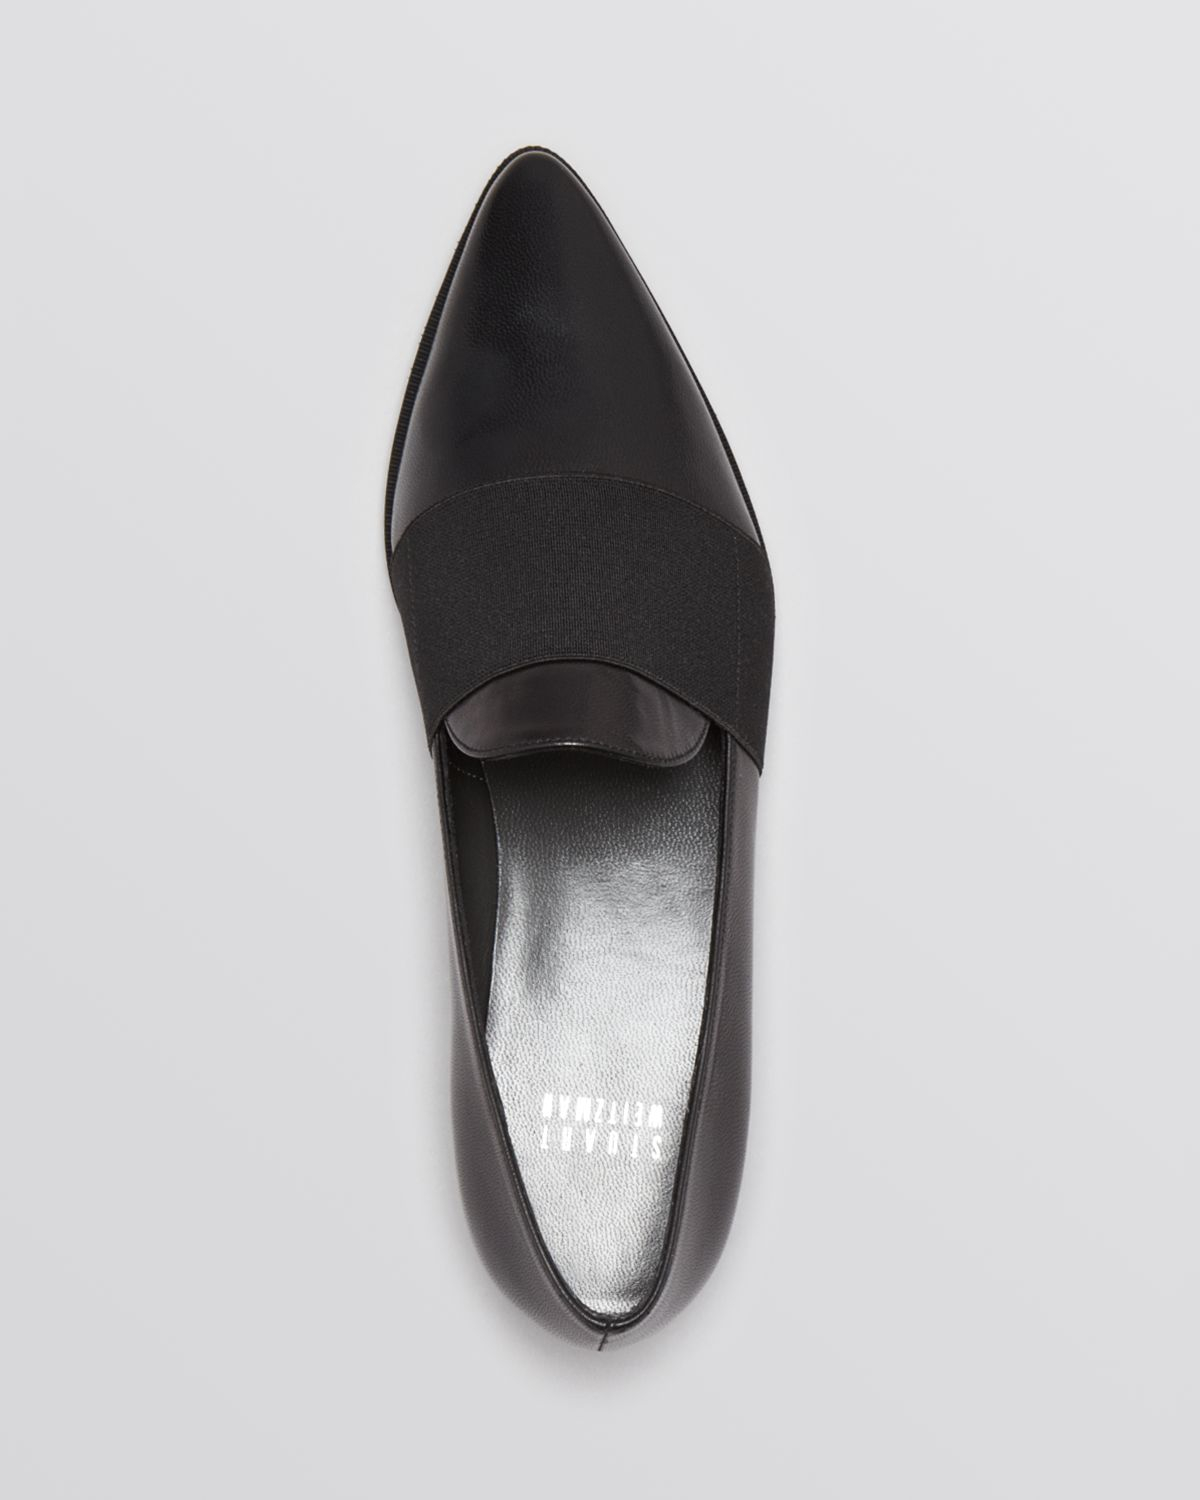 Stuart Weitzman Pointed-Toe Tassel Loafers outlet shop for 1e7O9